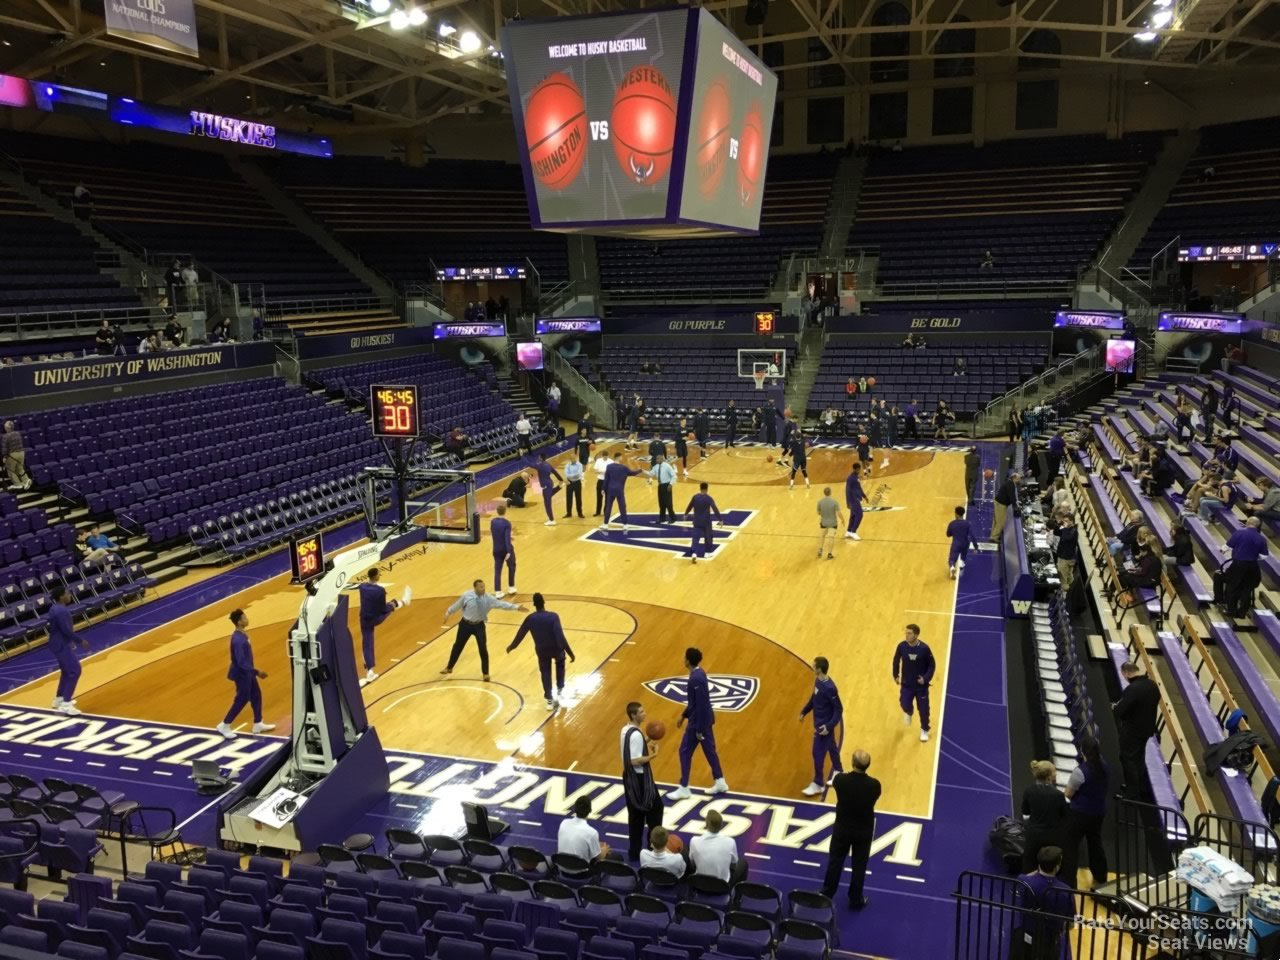 Seat View for Alaska Airlines Arena Section 4, Row 10